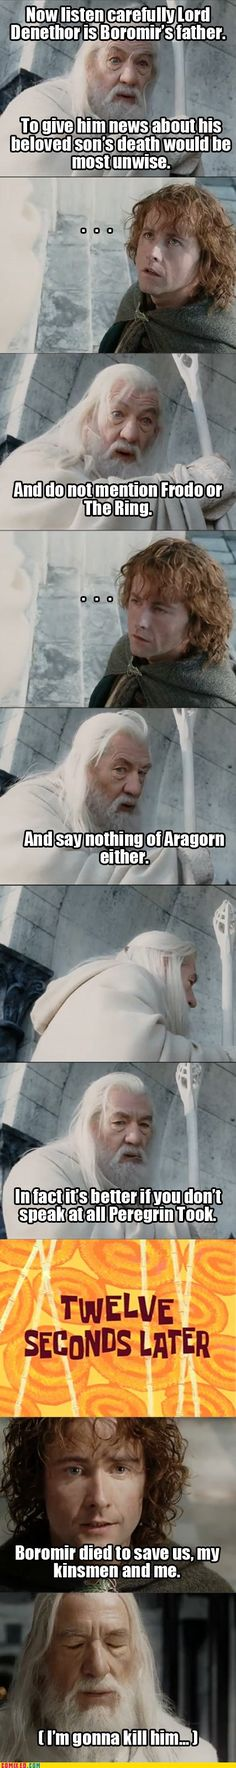 "Gandalf was probably thinking ""Fool of a Took!""."